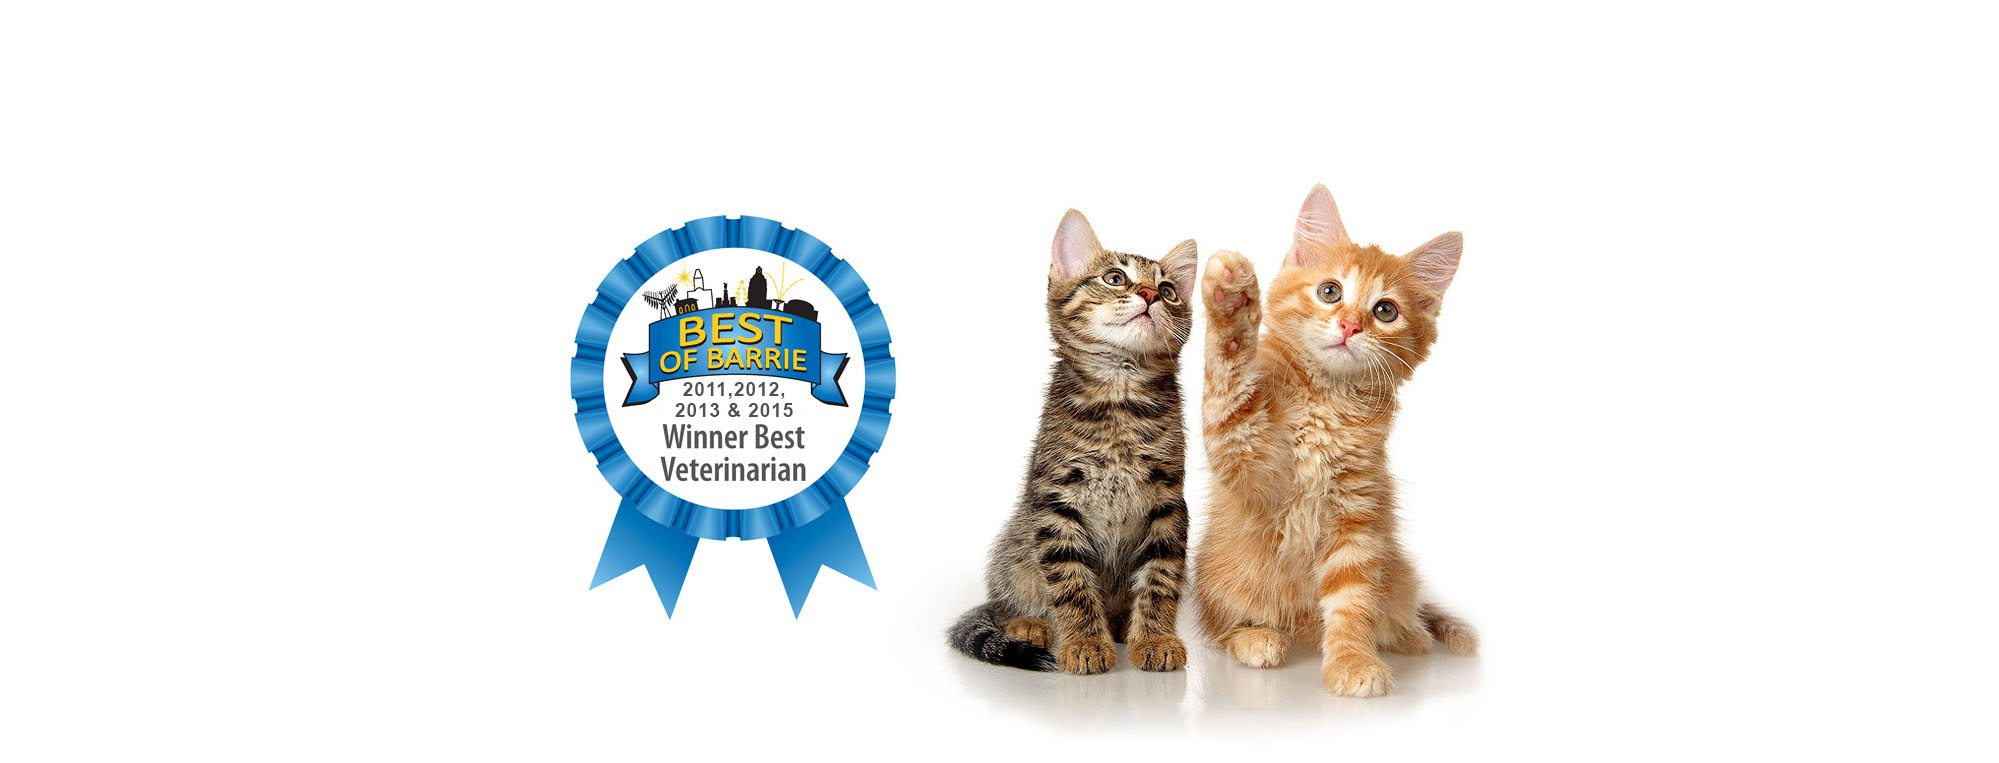 Best Of Barrie cats award